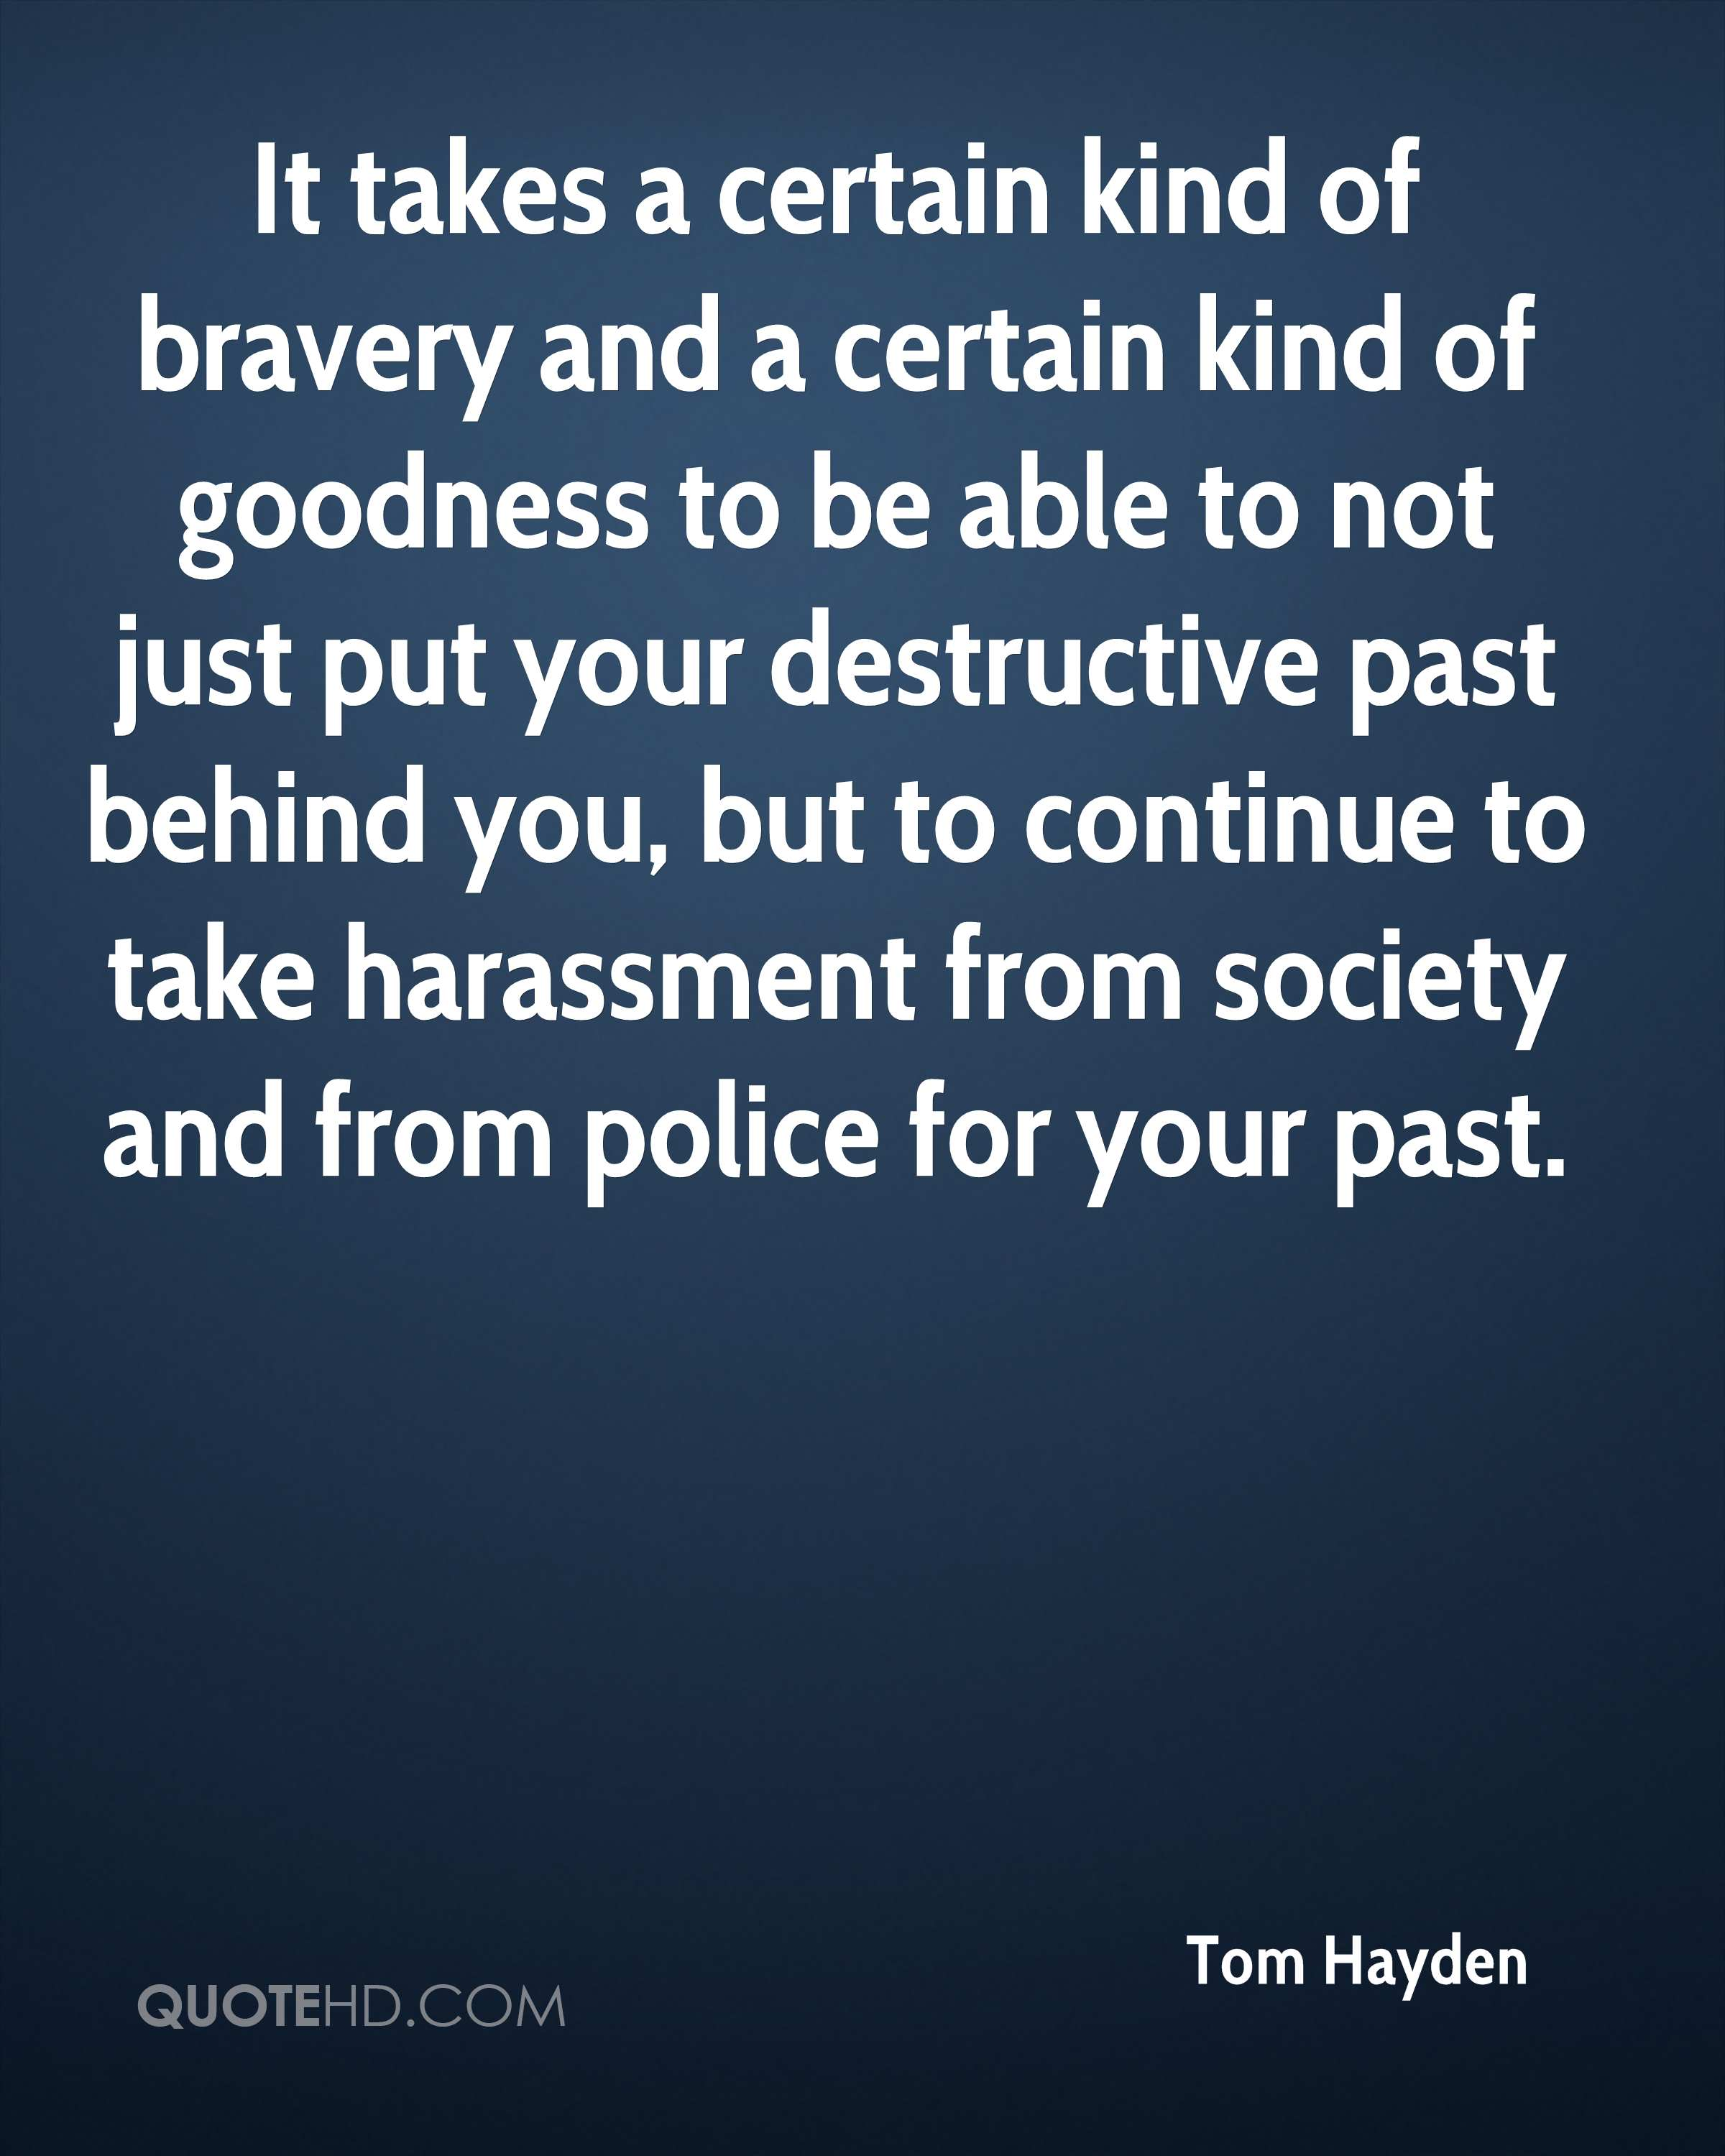 It takes a certain kind of bravery and a certain kind of goodness to be able to not just put your destructive past behind you, but to continue to take harassment from society and from police for your past.